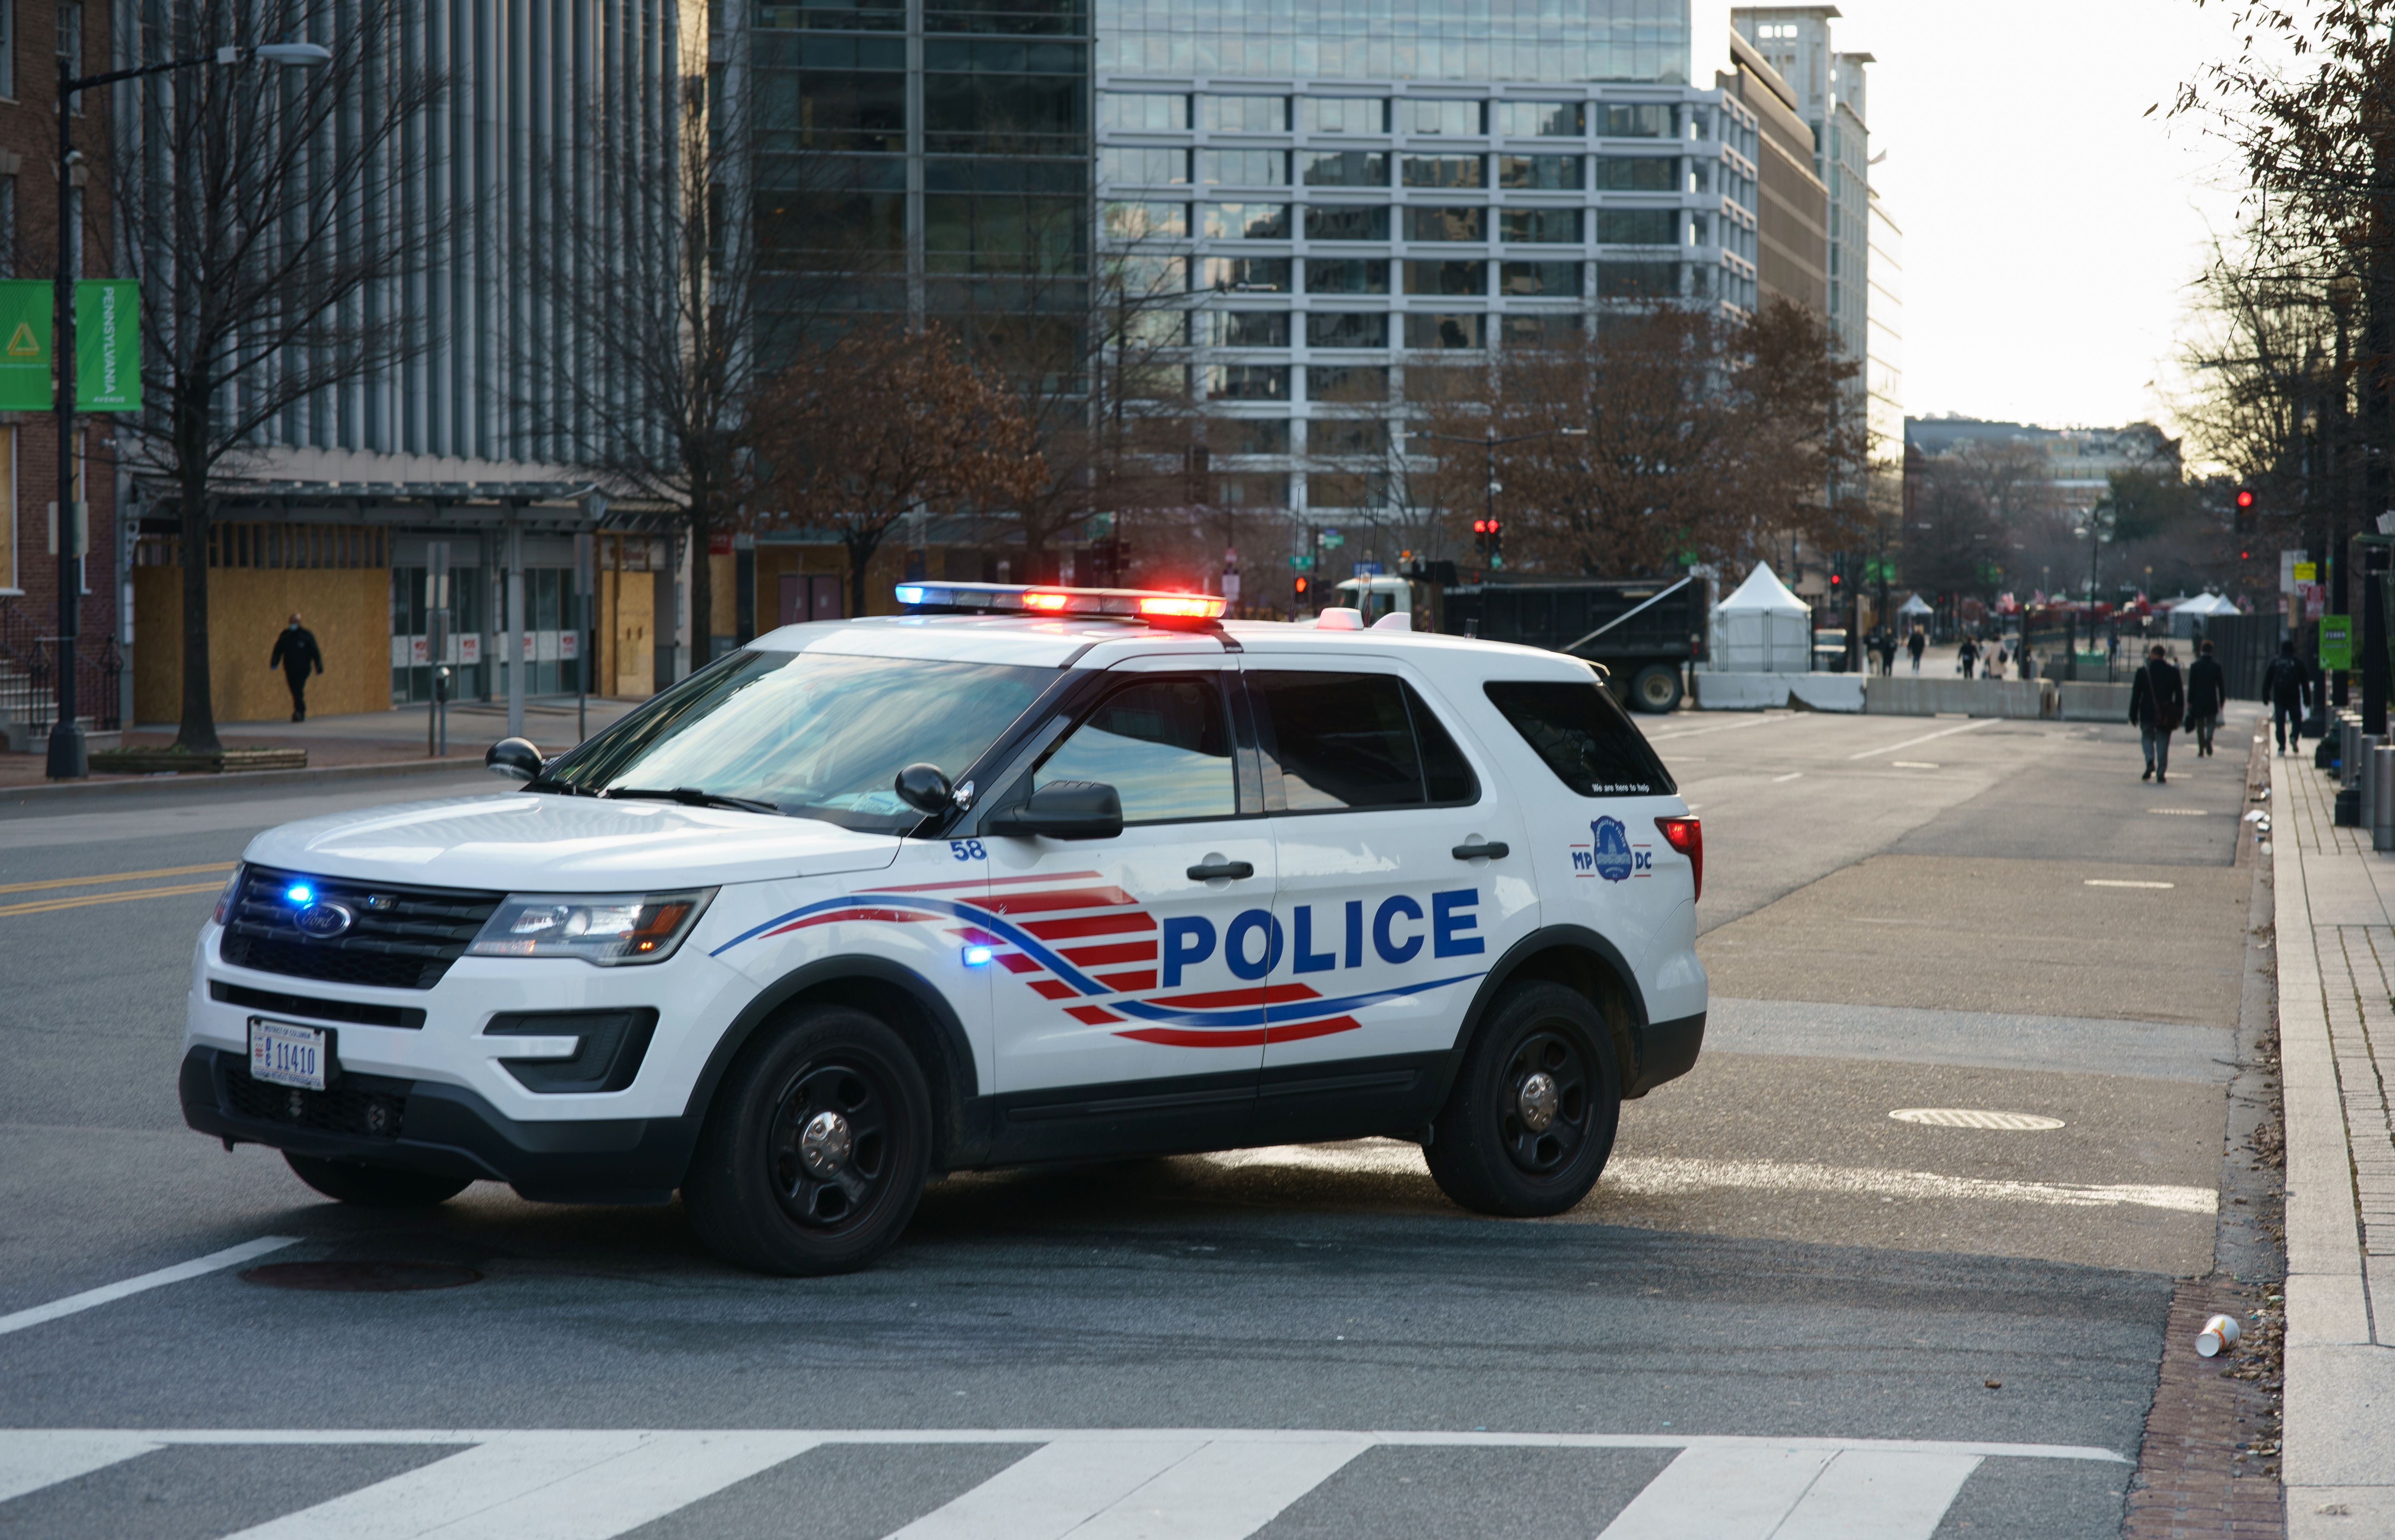 A D.C. Police car in Washington, D.C. (Photo by MANDEL NGAN/AFP via Getty Images)